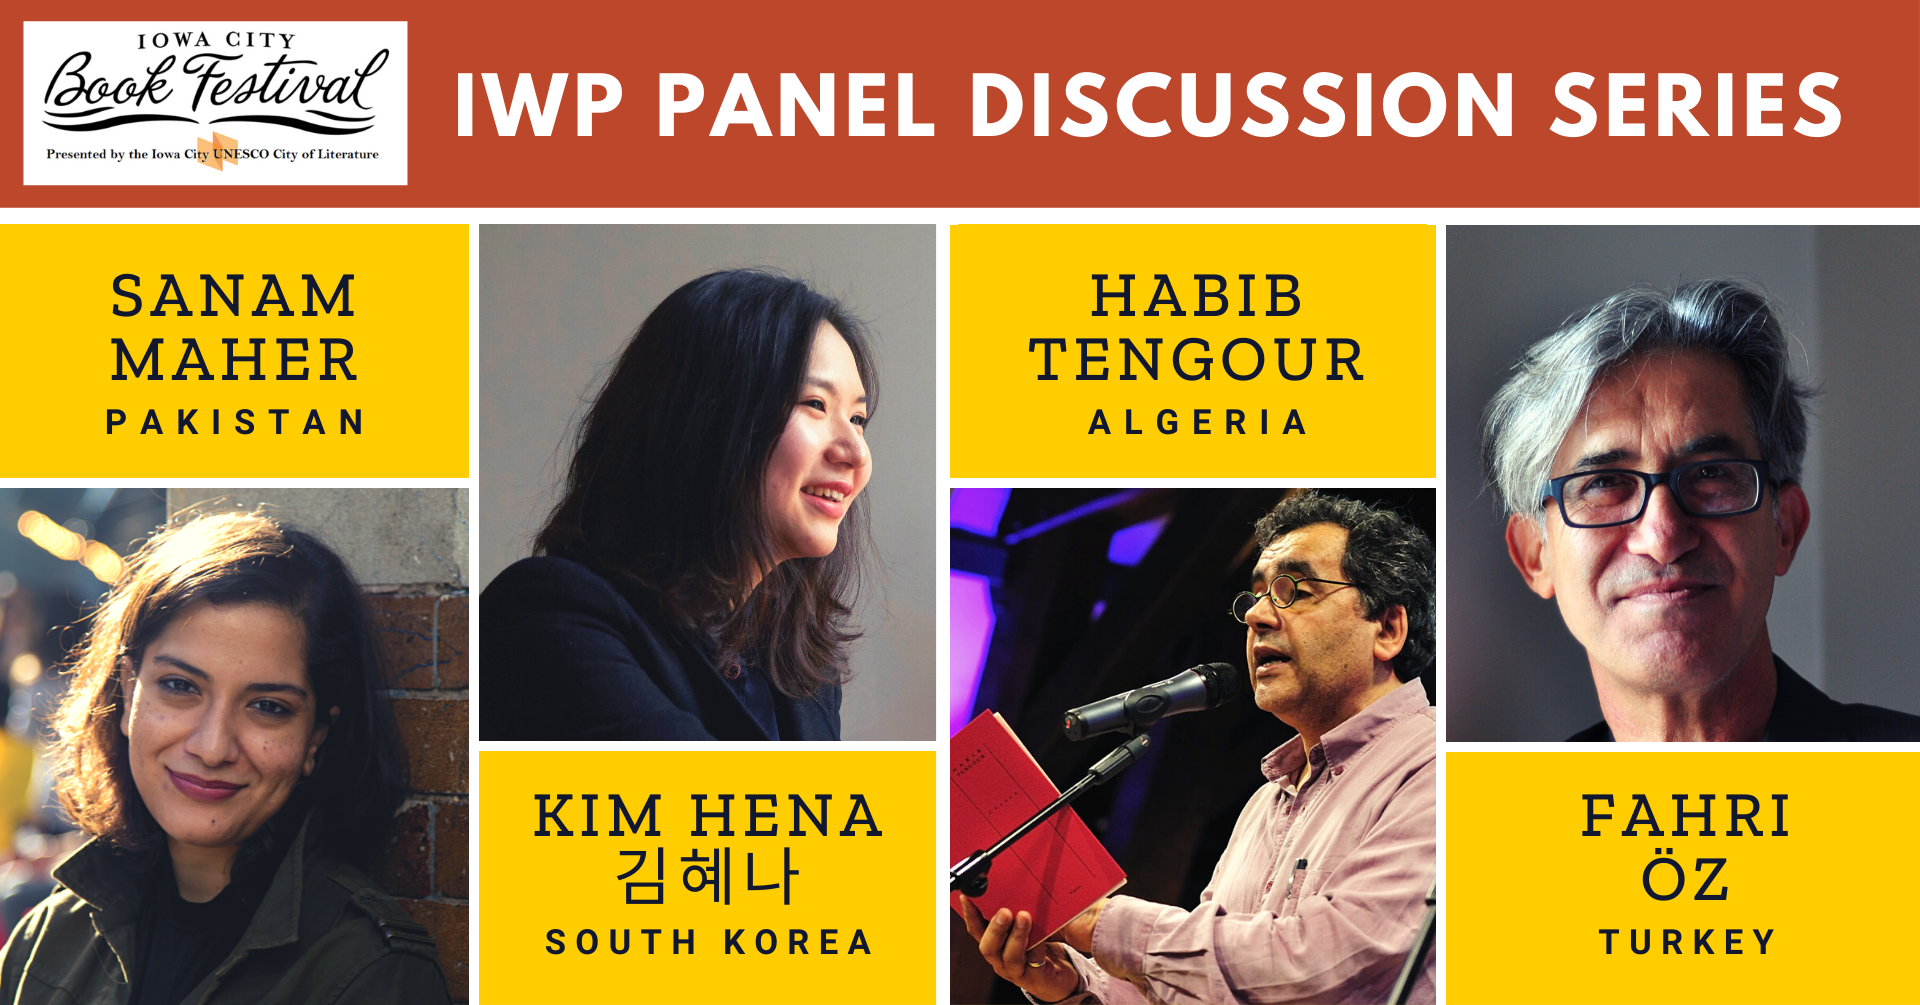 Iowa City Book Festival logo with IWP Panel Discussion Series and headshots of two women and two men with their name and country of origin under each: Sanam Maher, Pakistan; Kim Hena, South Korea; Habib Tengour, Algeria; Fahri Oz, Turkey